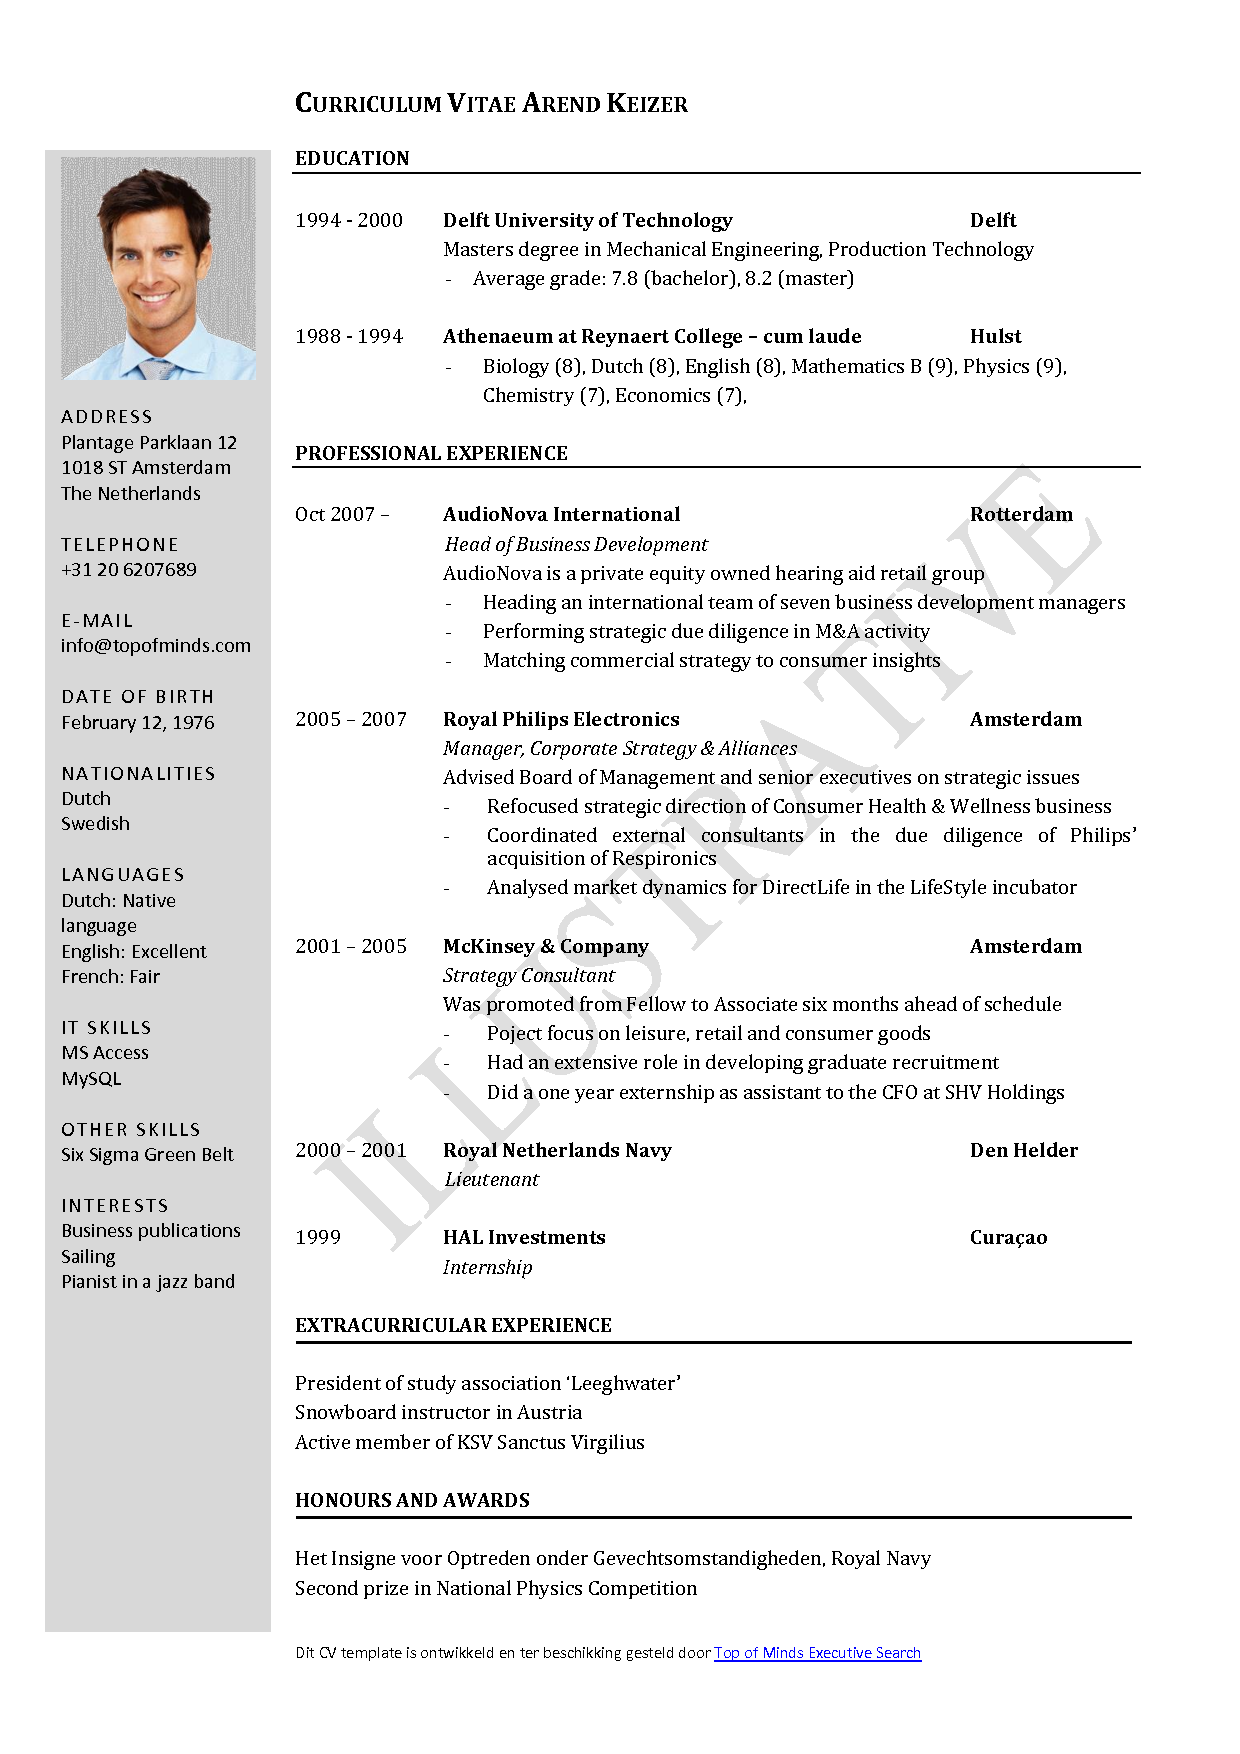 Captivating Do You Need To Write Your Own CV (curriculum Viate) Or Resume? Here You  Will Find Some Templates, Tips And Advices To Write The Perfect CV. On What Is Resume Cv